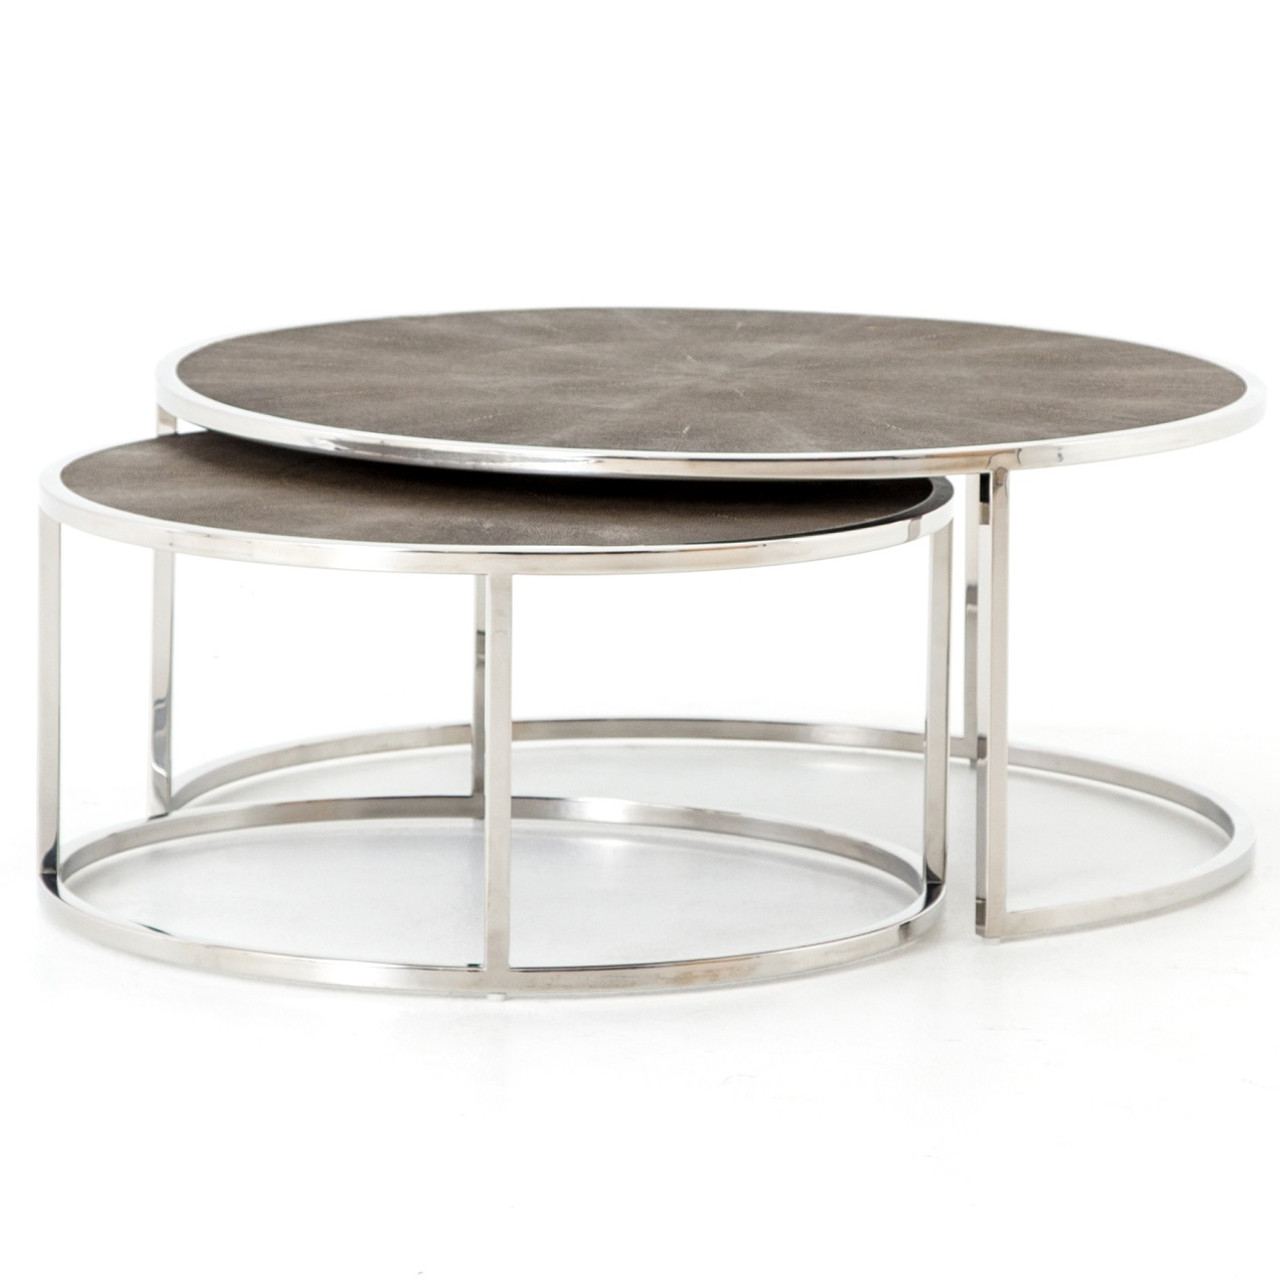 Hollywood Shagreen Nesting Coffee Tables Stainless Steel Zin Home